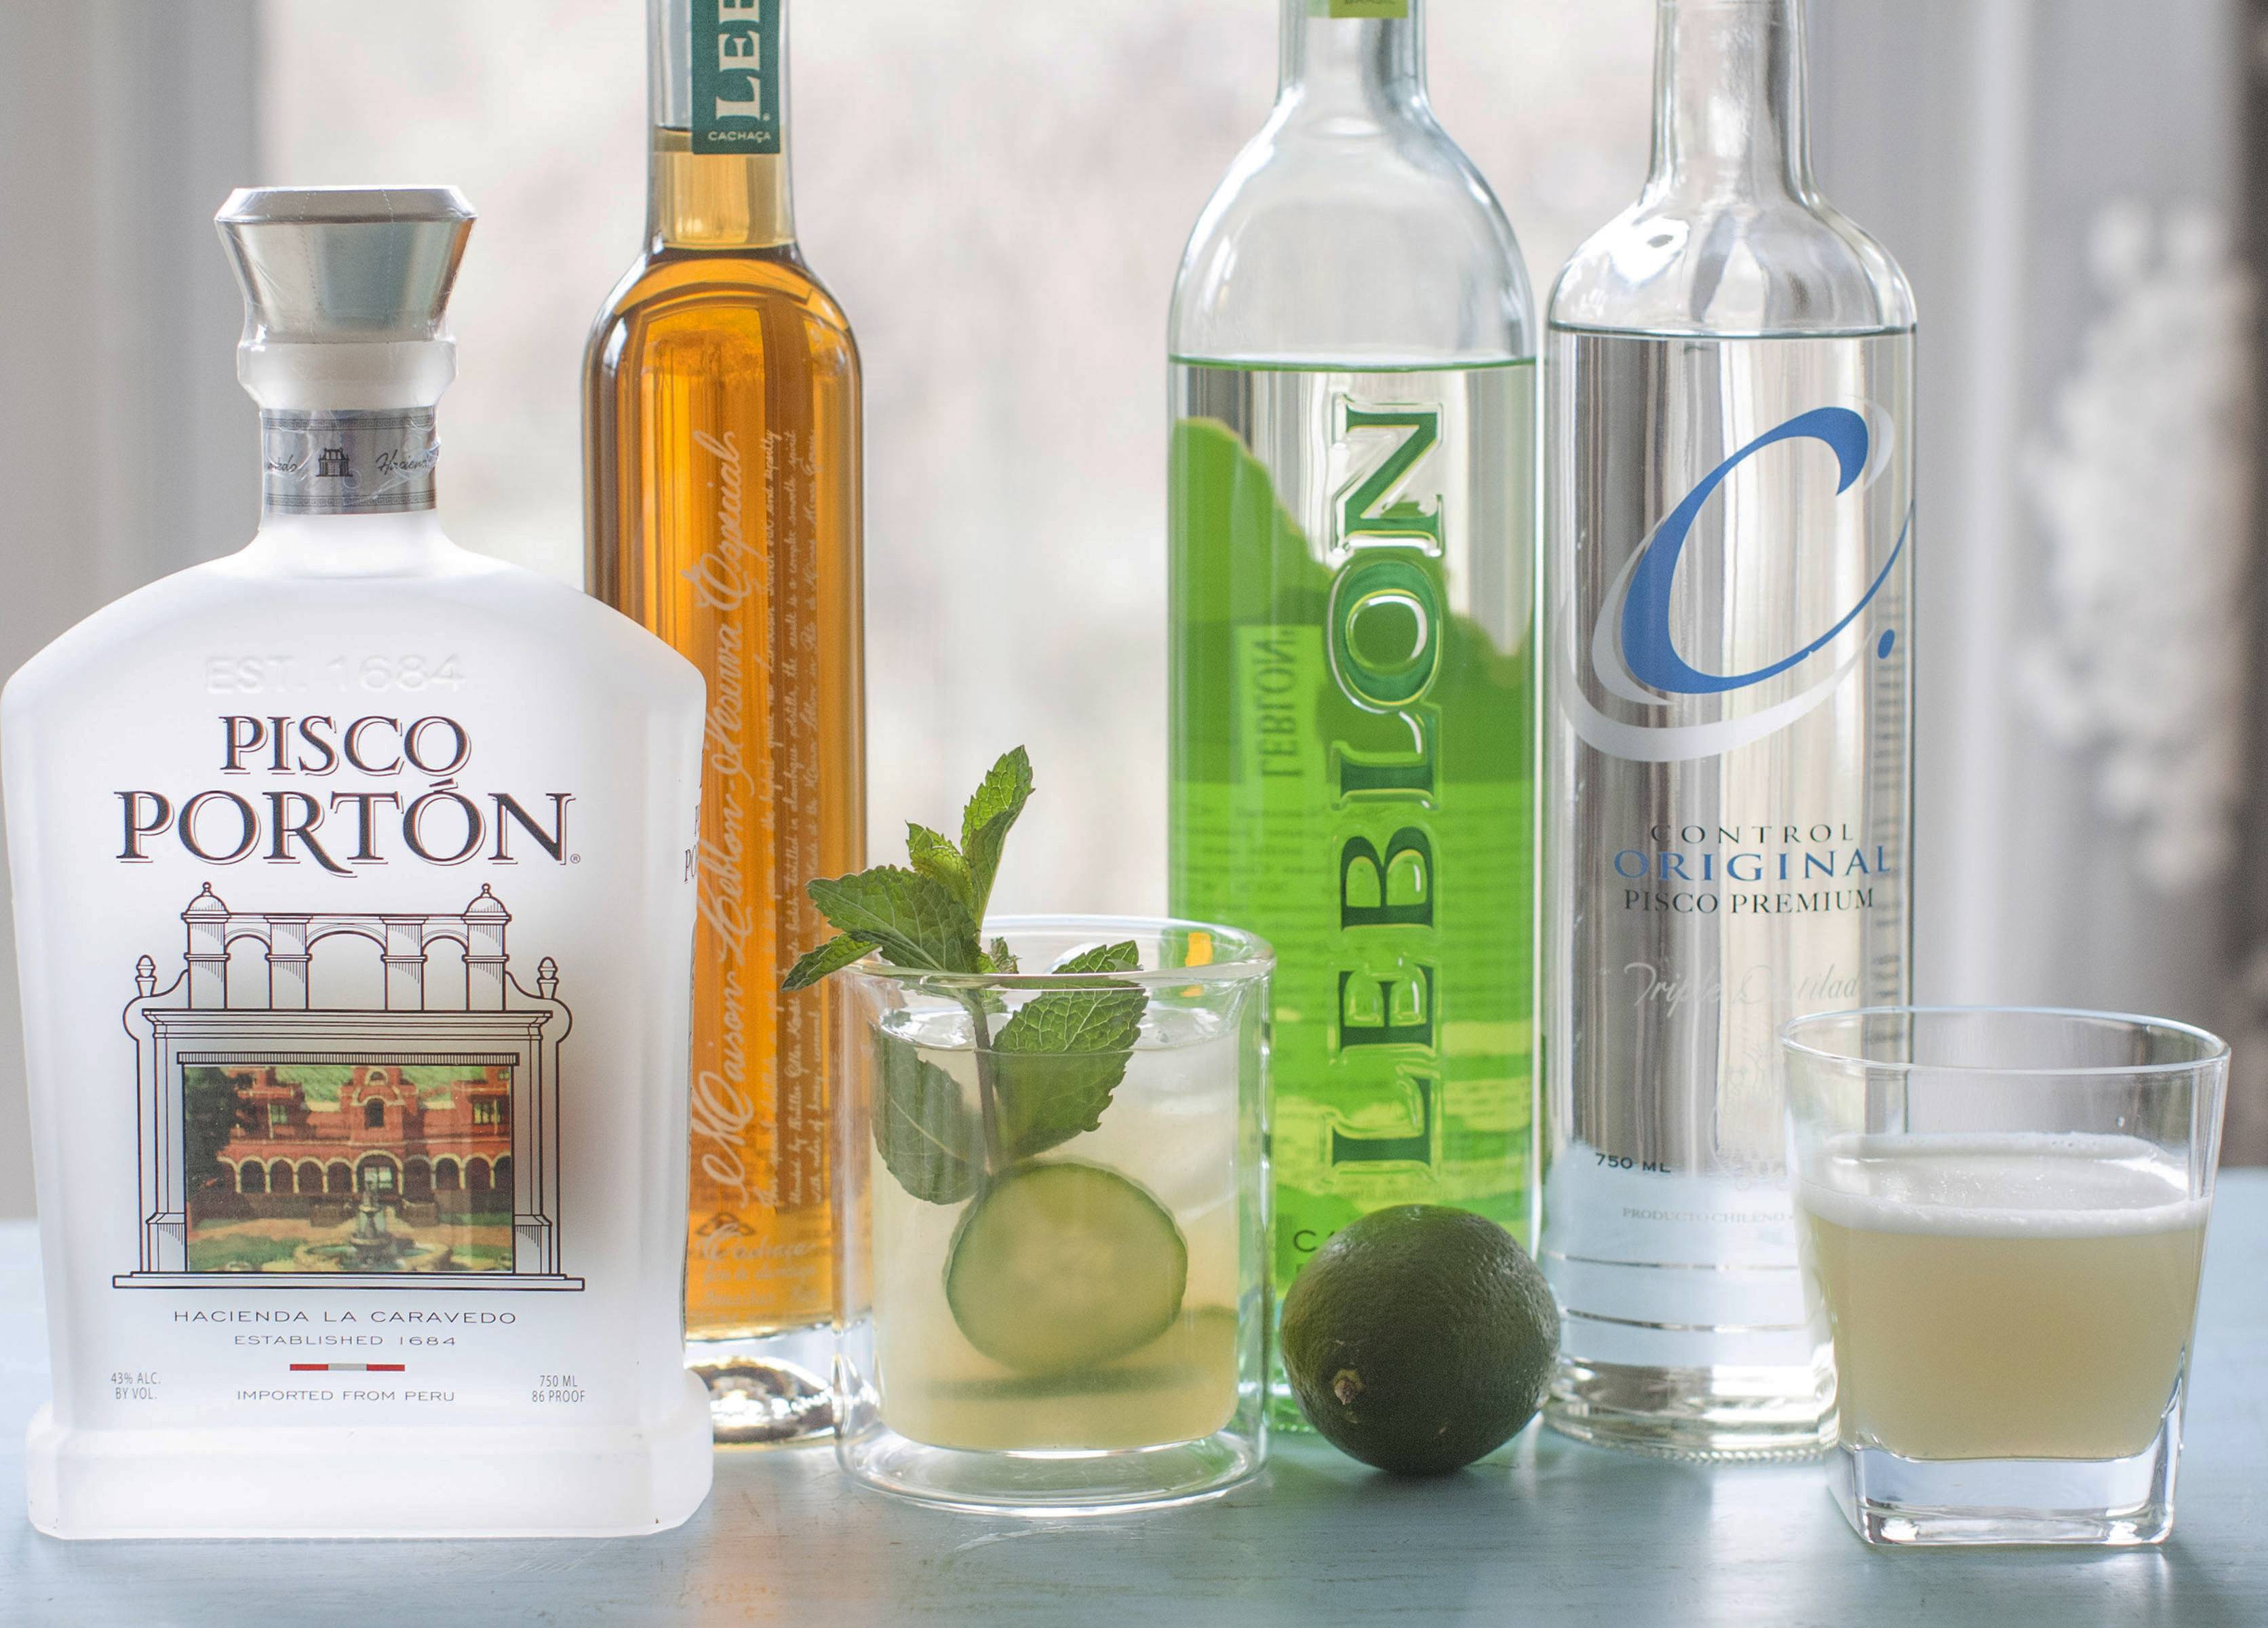 South American spirits and cocktails, such as Pisco Porton, from left, Leblon special reserve, a cachaca mojito made with Leblon cachaca, Leblon cachaca, Control original pisco premium and a pisco sour, are becoming more popular in the U.S.